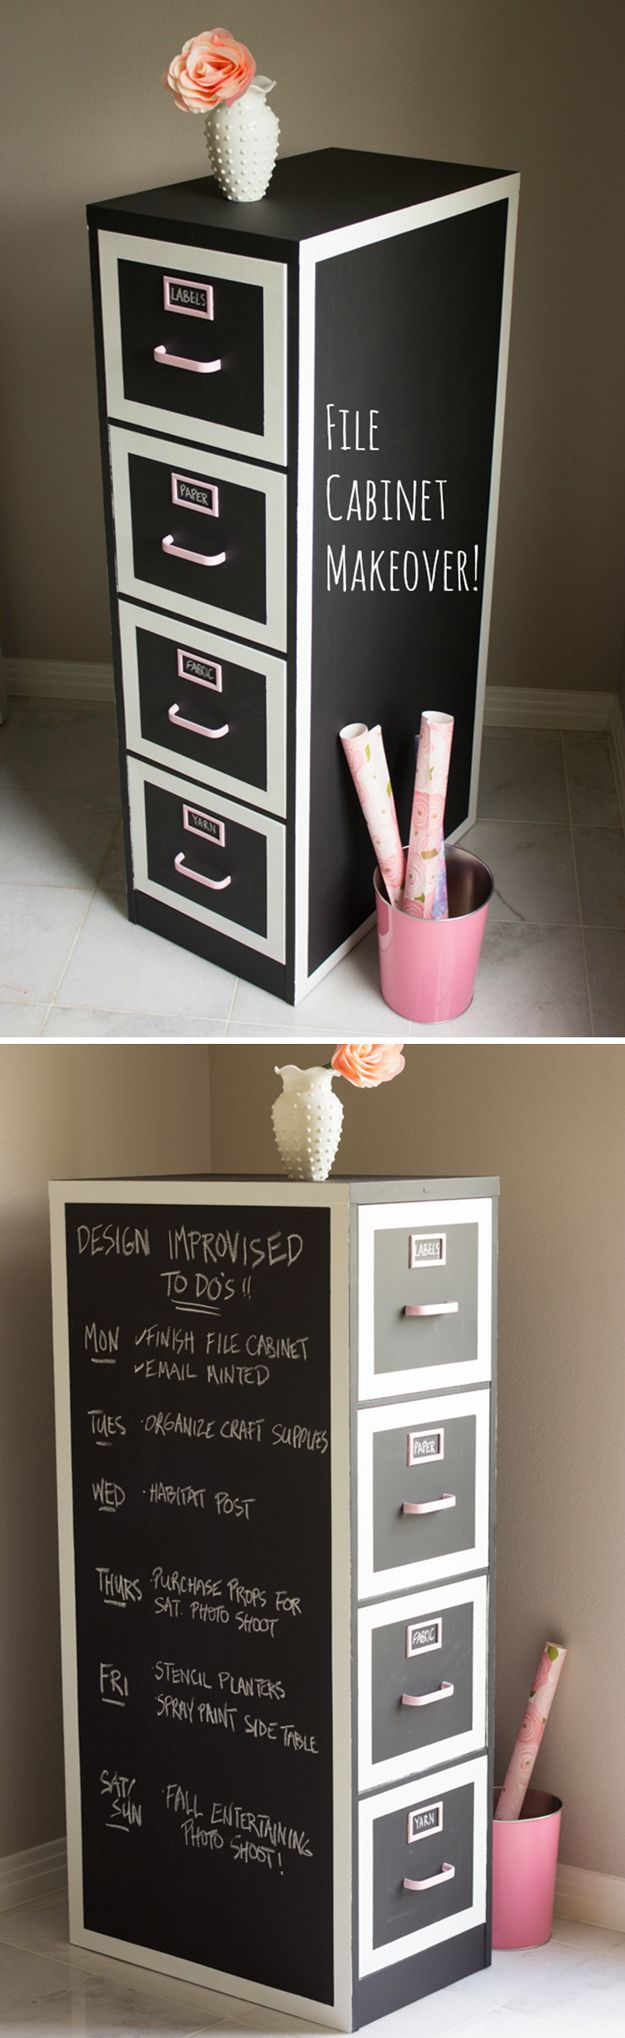 16 More DIY Chalk Paint Furniture Ideas DIYReady.com | Easy DIY Crafts, Fun Projects, & DIY Craft Ideas For Kids & Adults